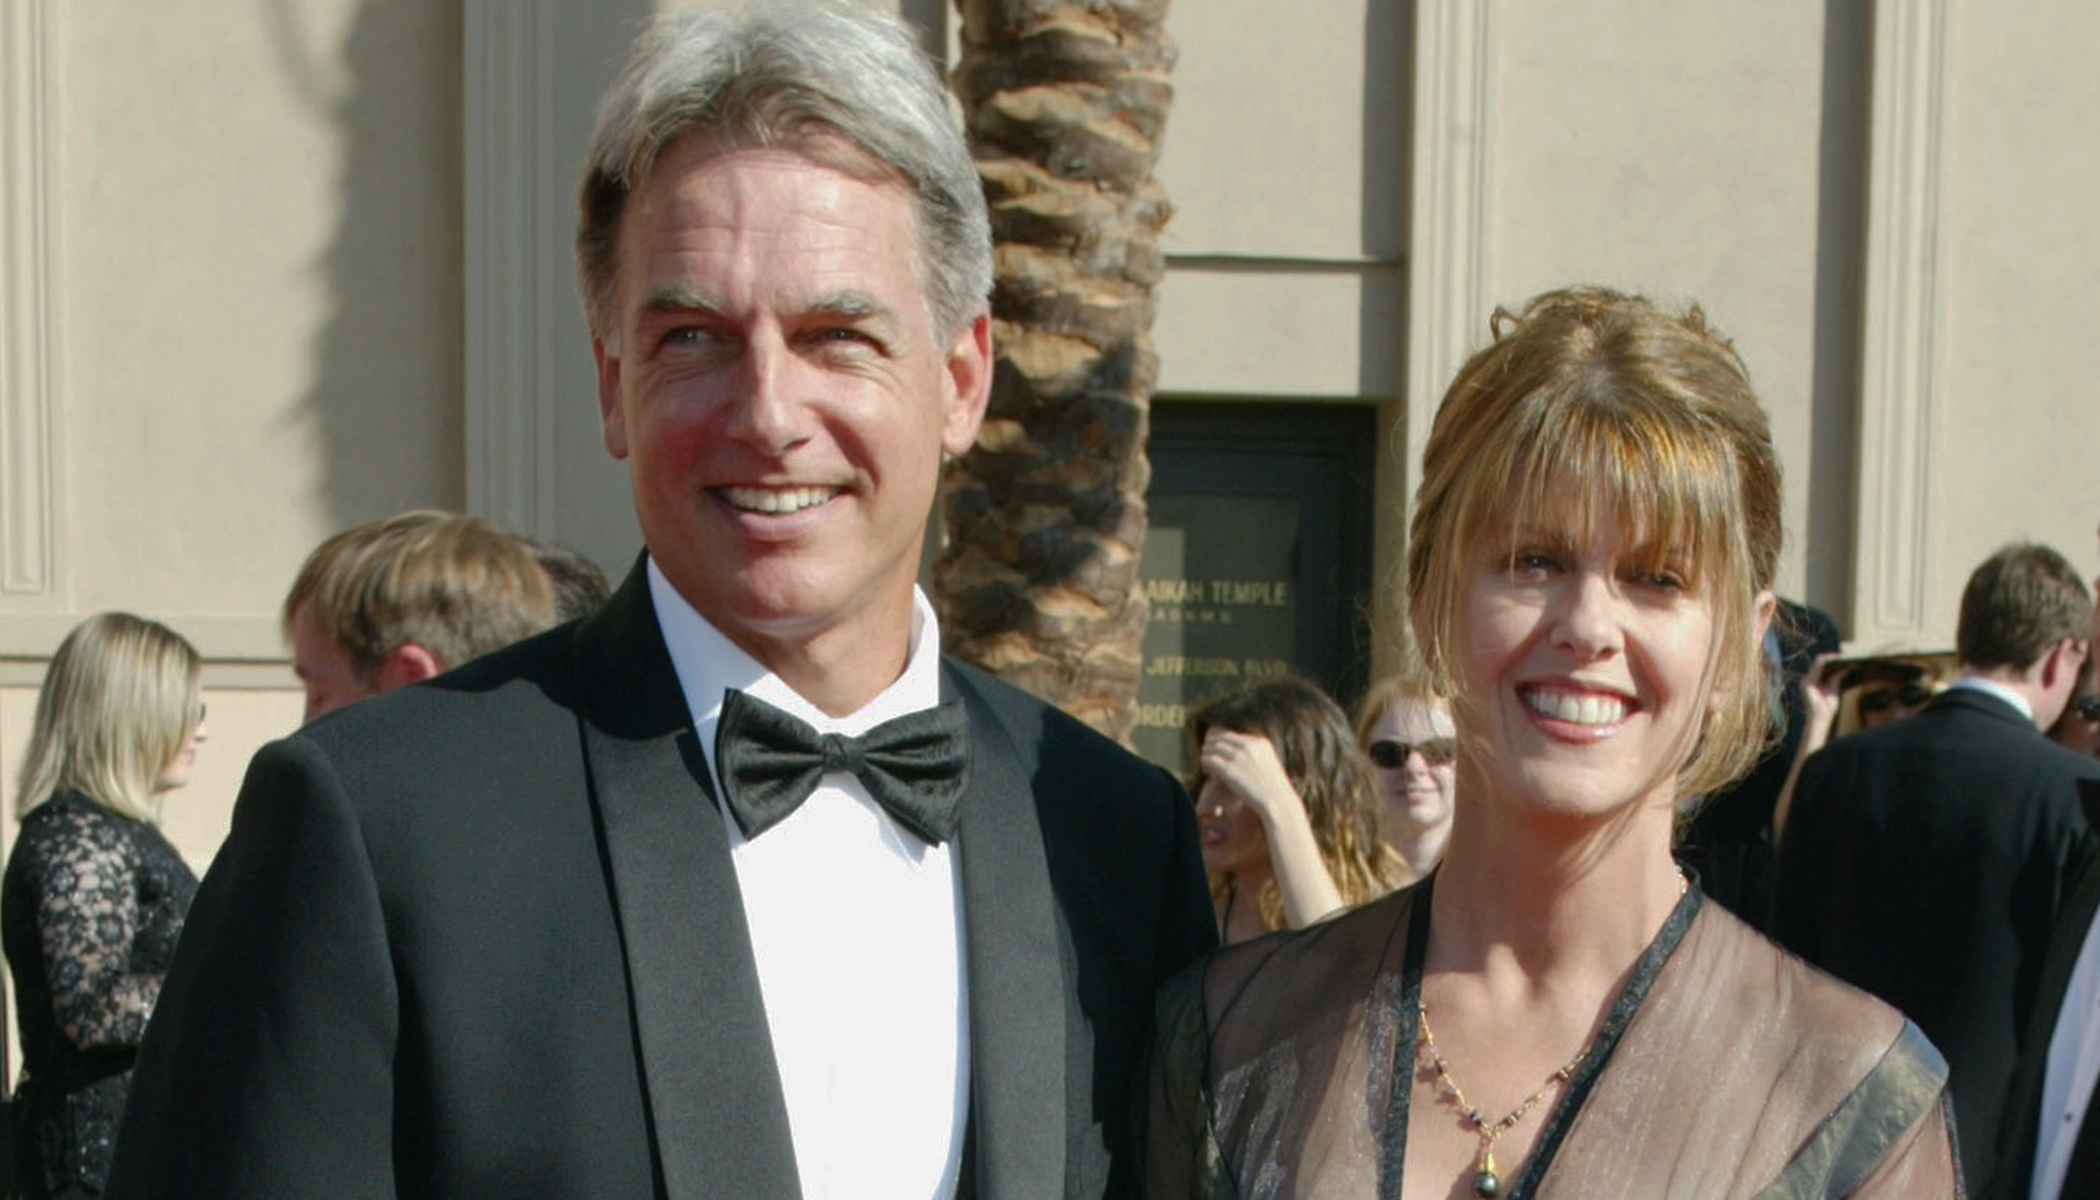 NCIS Star Mark Harmon Reveals 'The Key' to 30+ Years of Happy Marriage to Pam Dawber